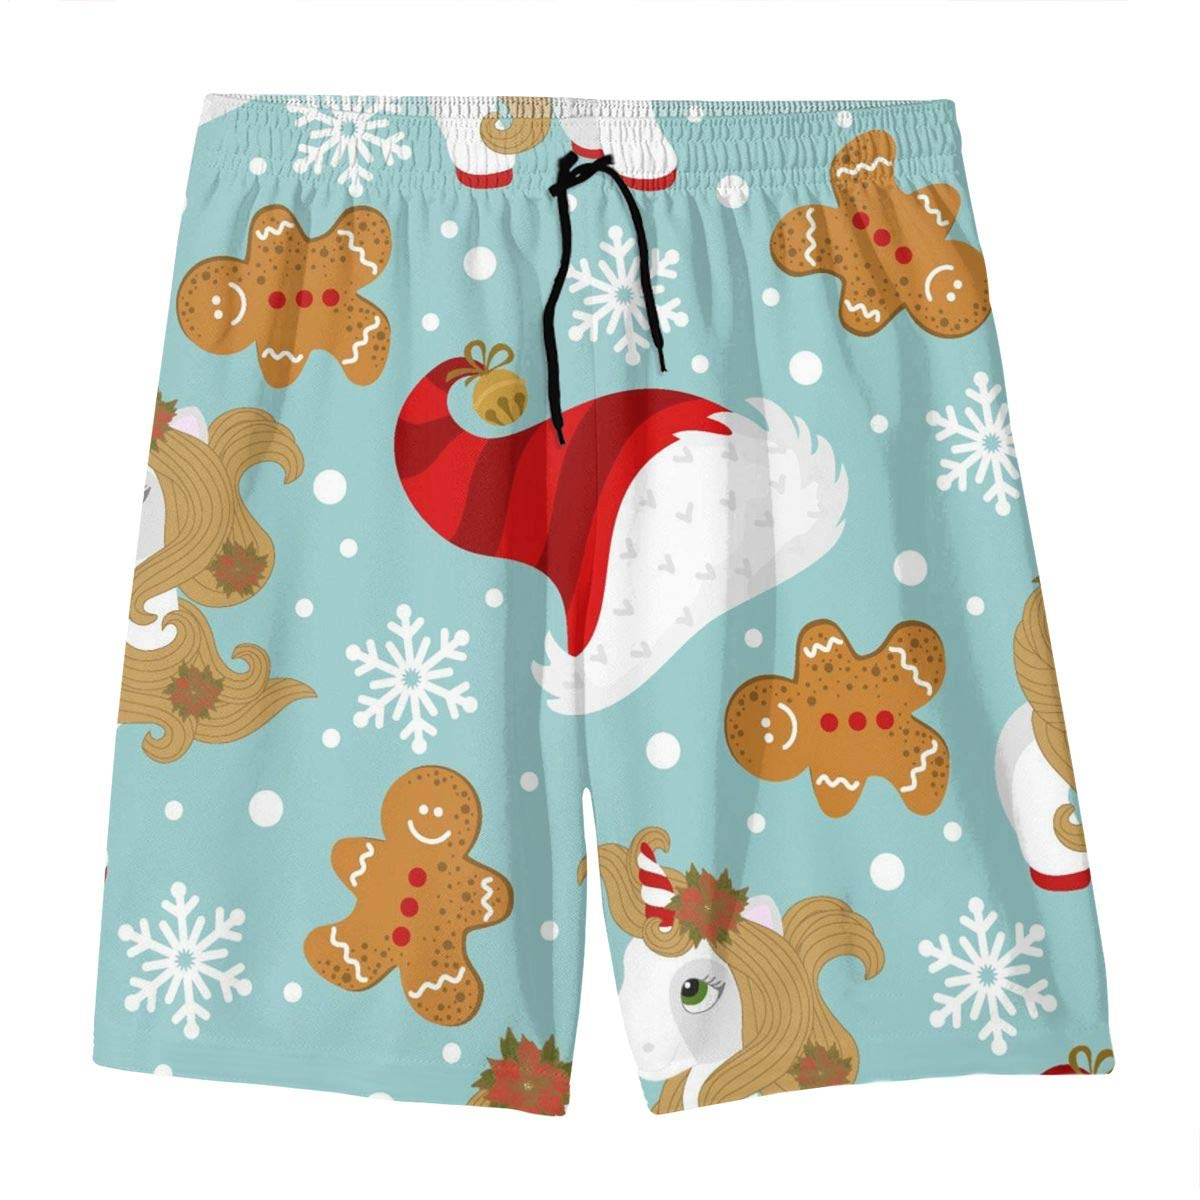 Mens Swim Trunks Christmas Unicorn Printed Beach Board Shorts with Pockets Cool Novelty Bathing Suits for Teen Boys